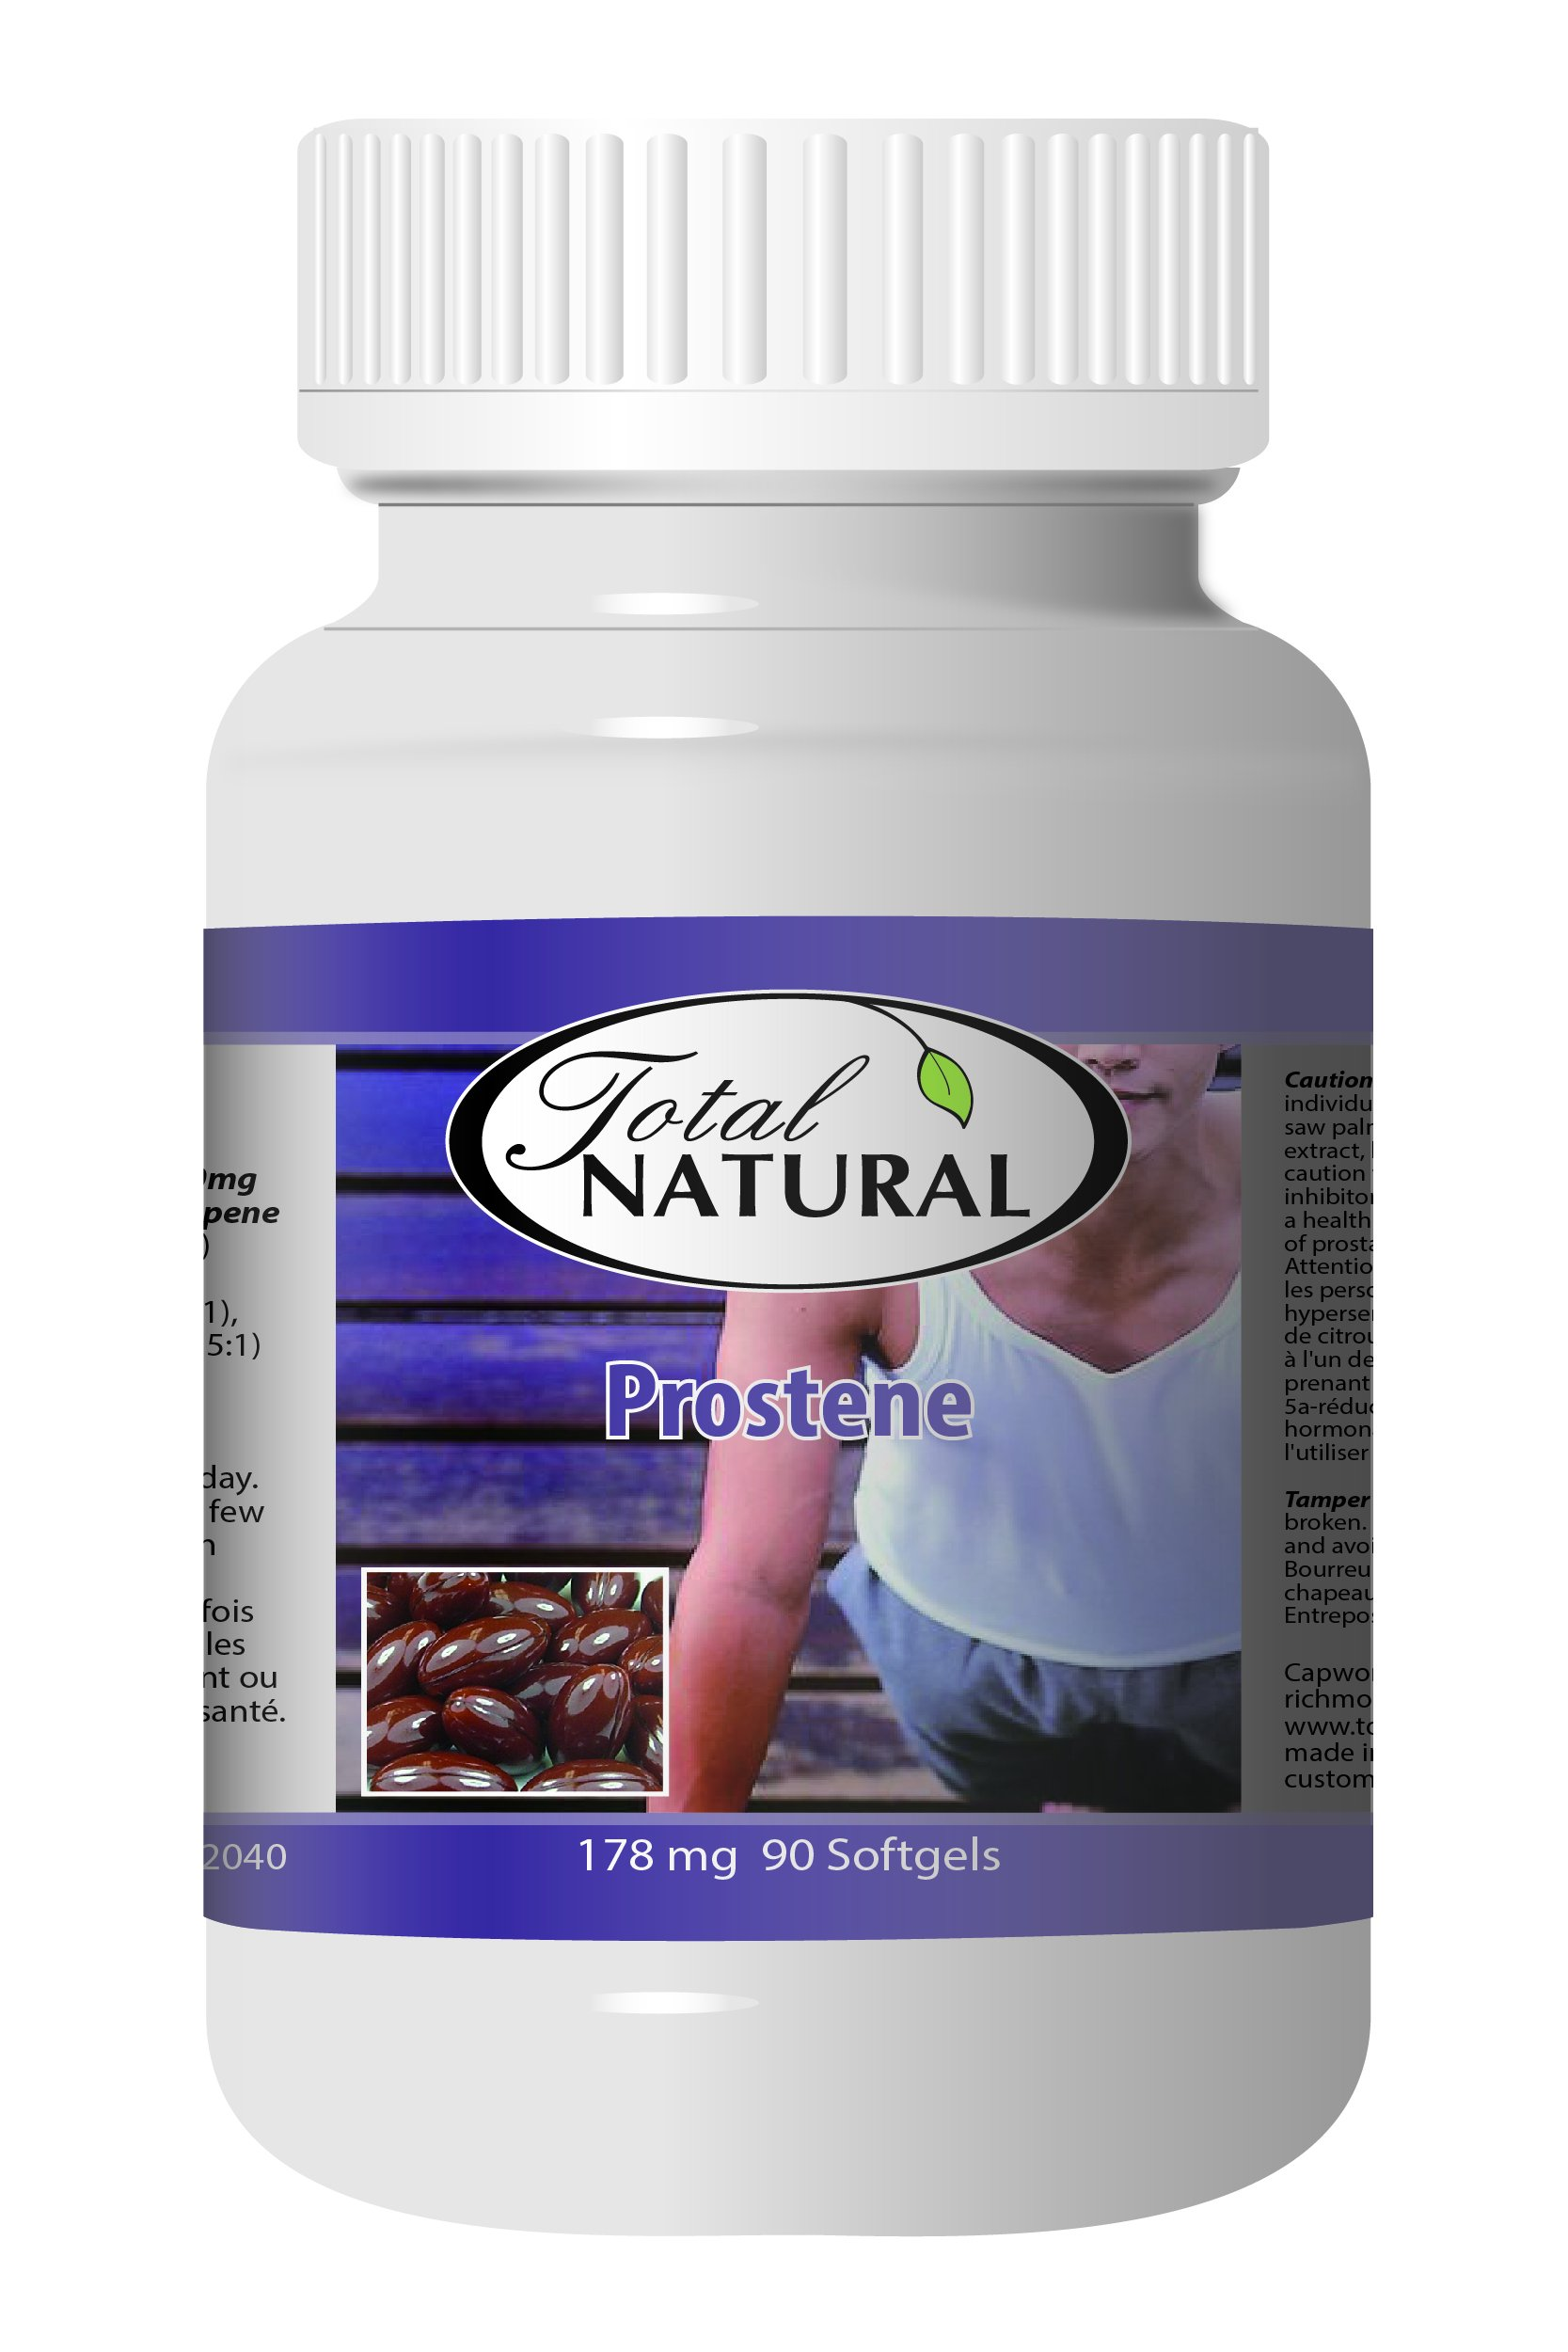 Prostene 178mg 90s - [12 bottles] Men And Sex Health Care by Total Natural (Image #1)